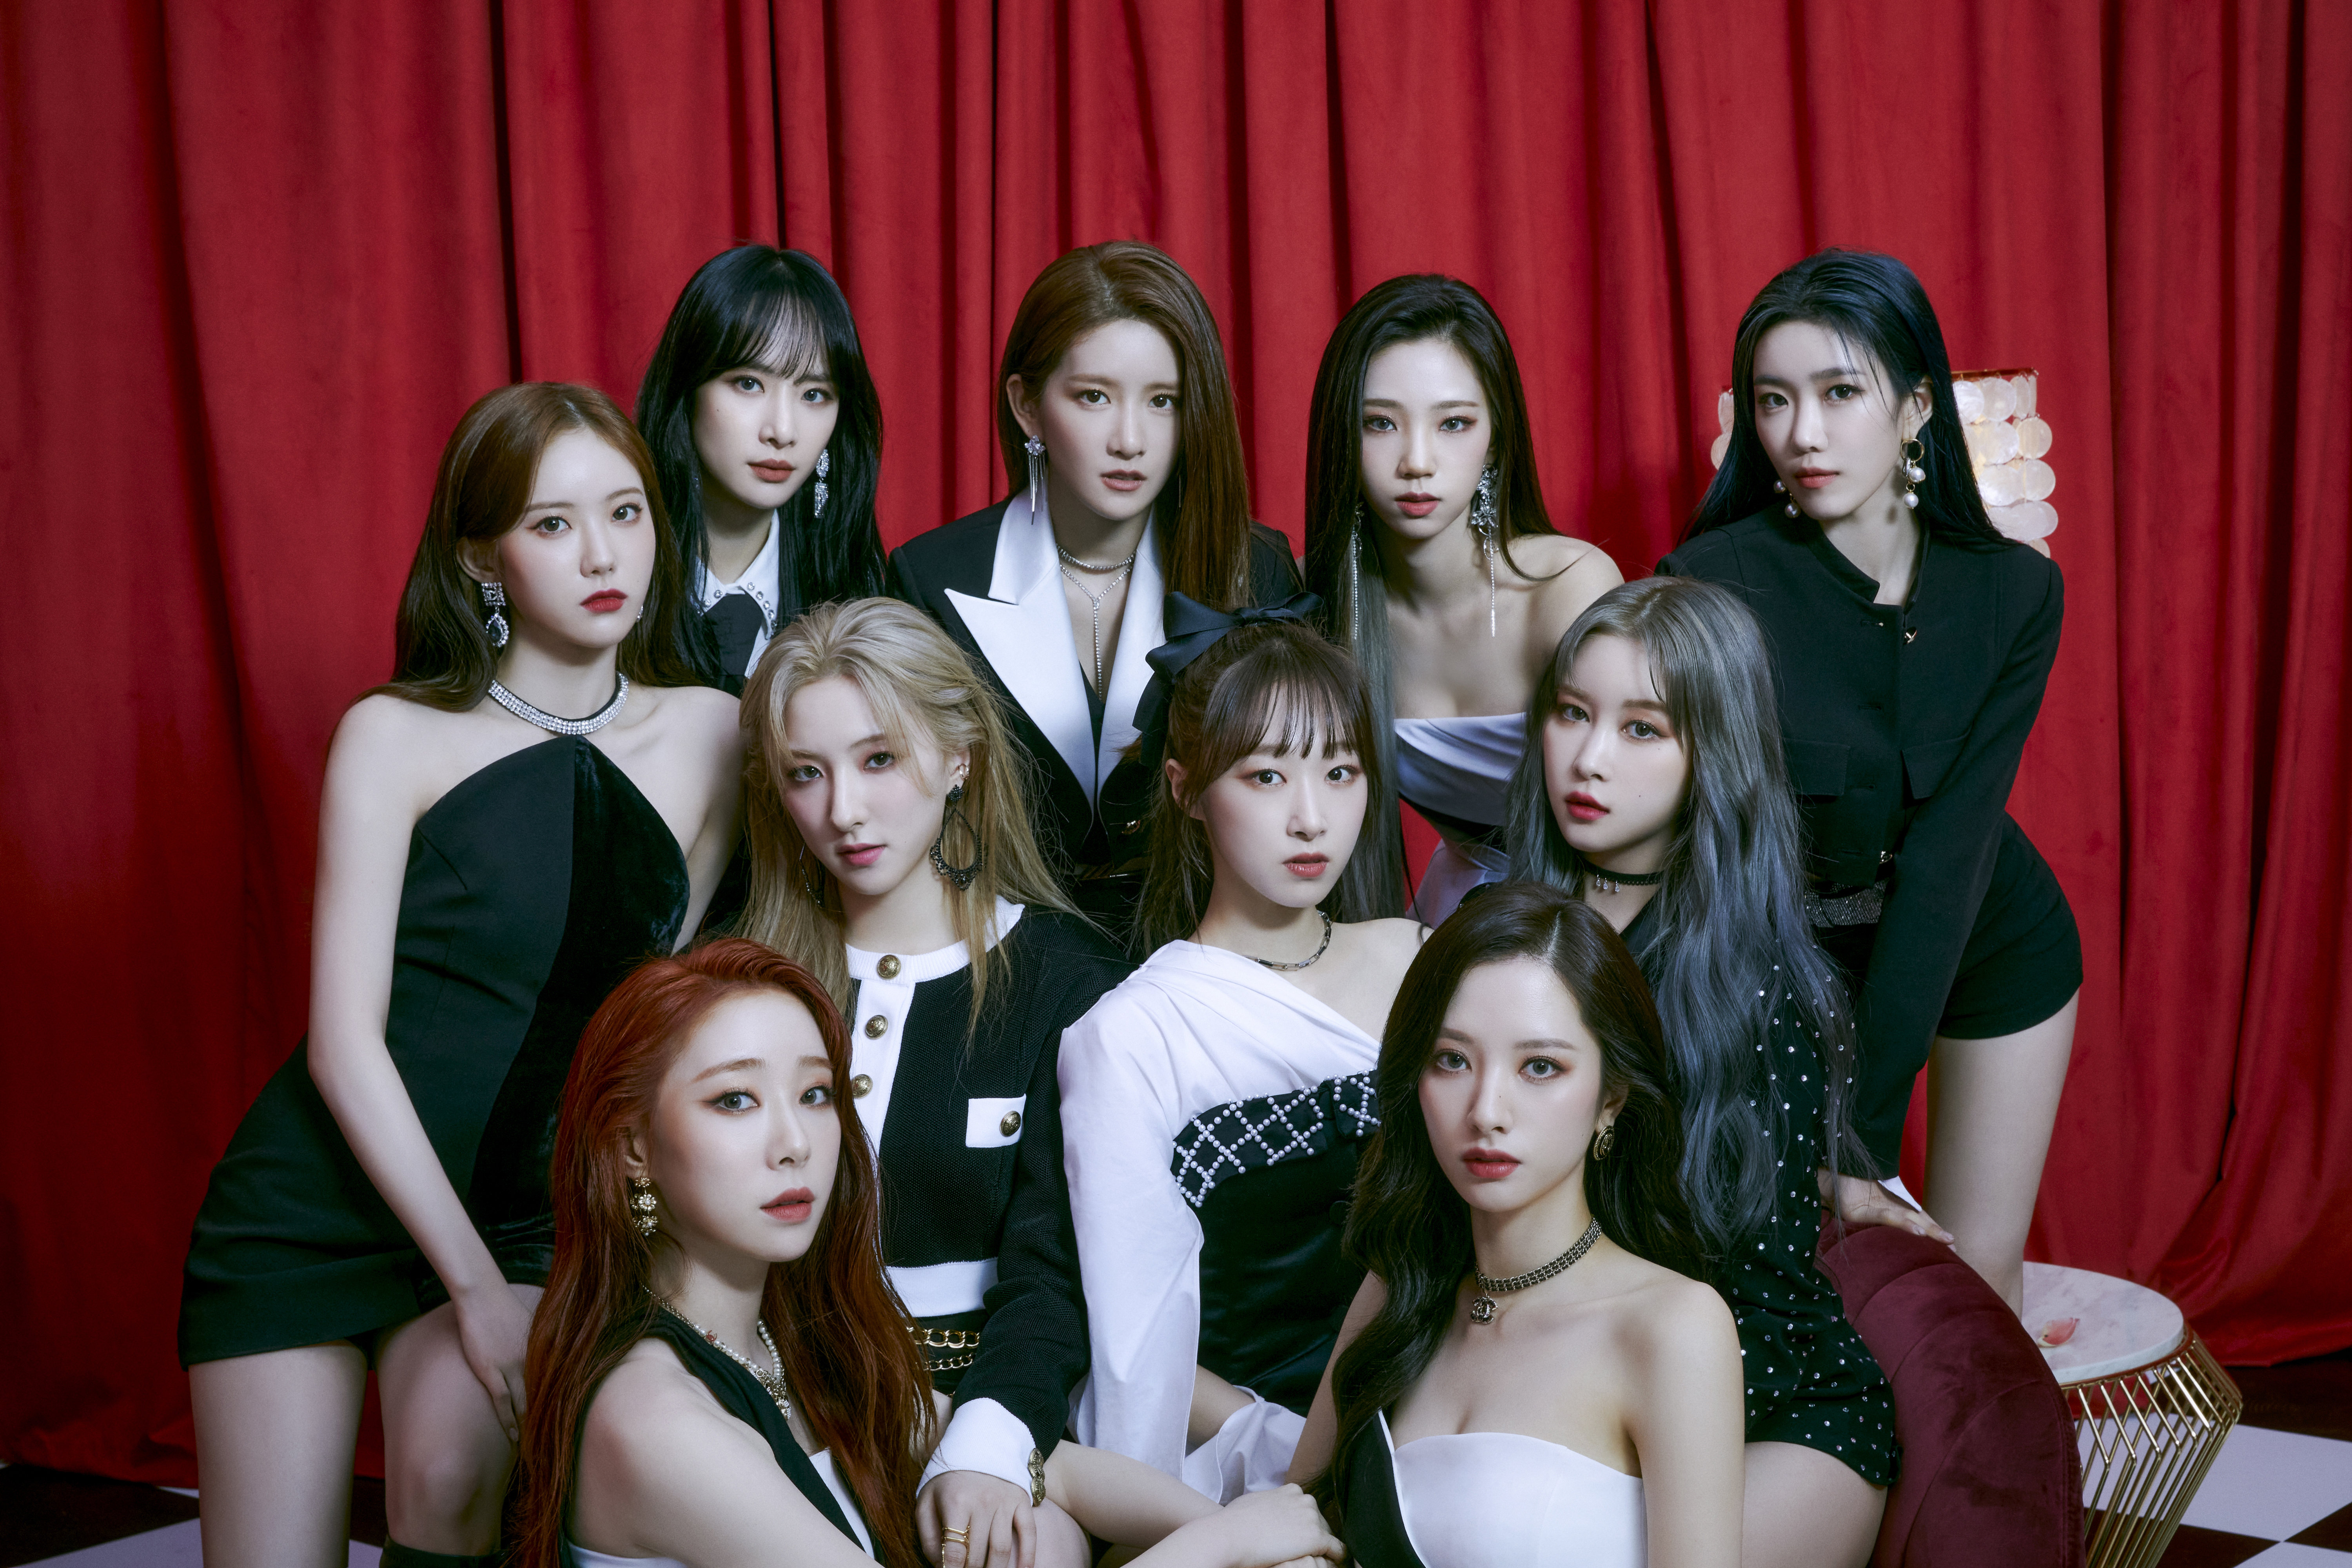 WJSN Unnatural Concept Group